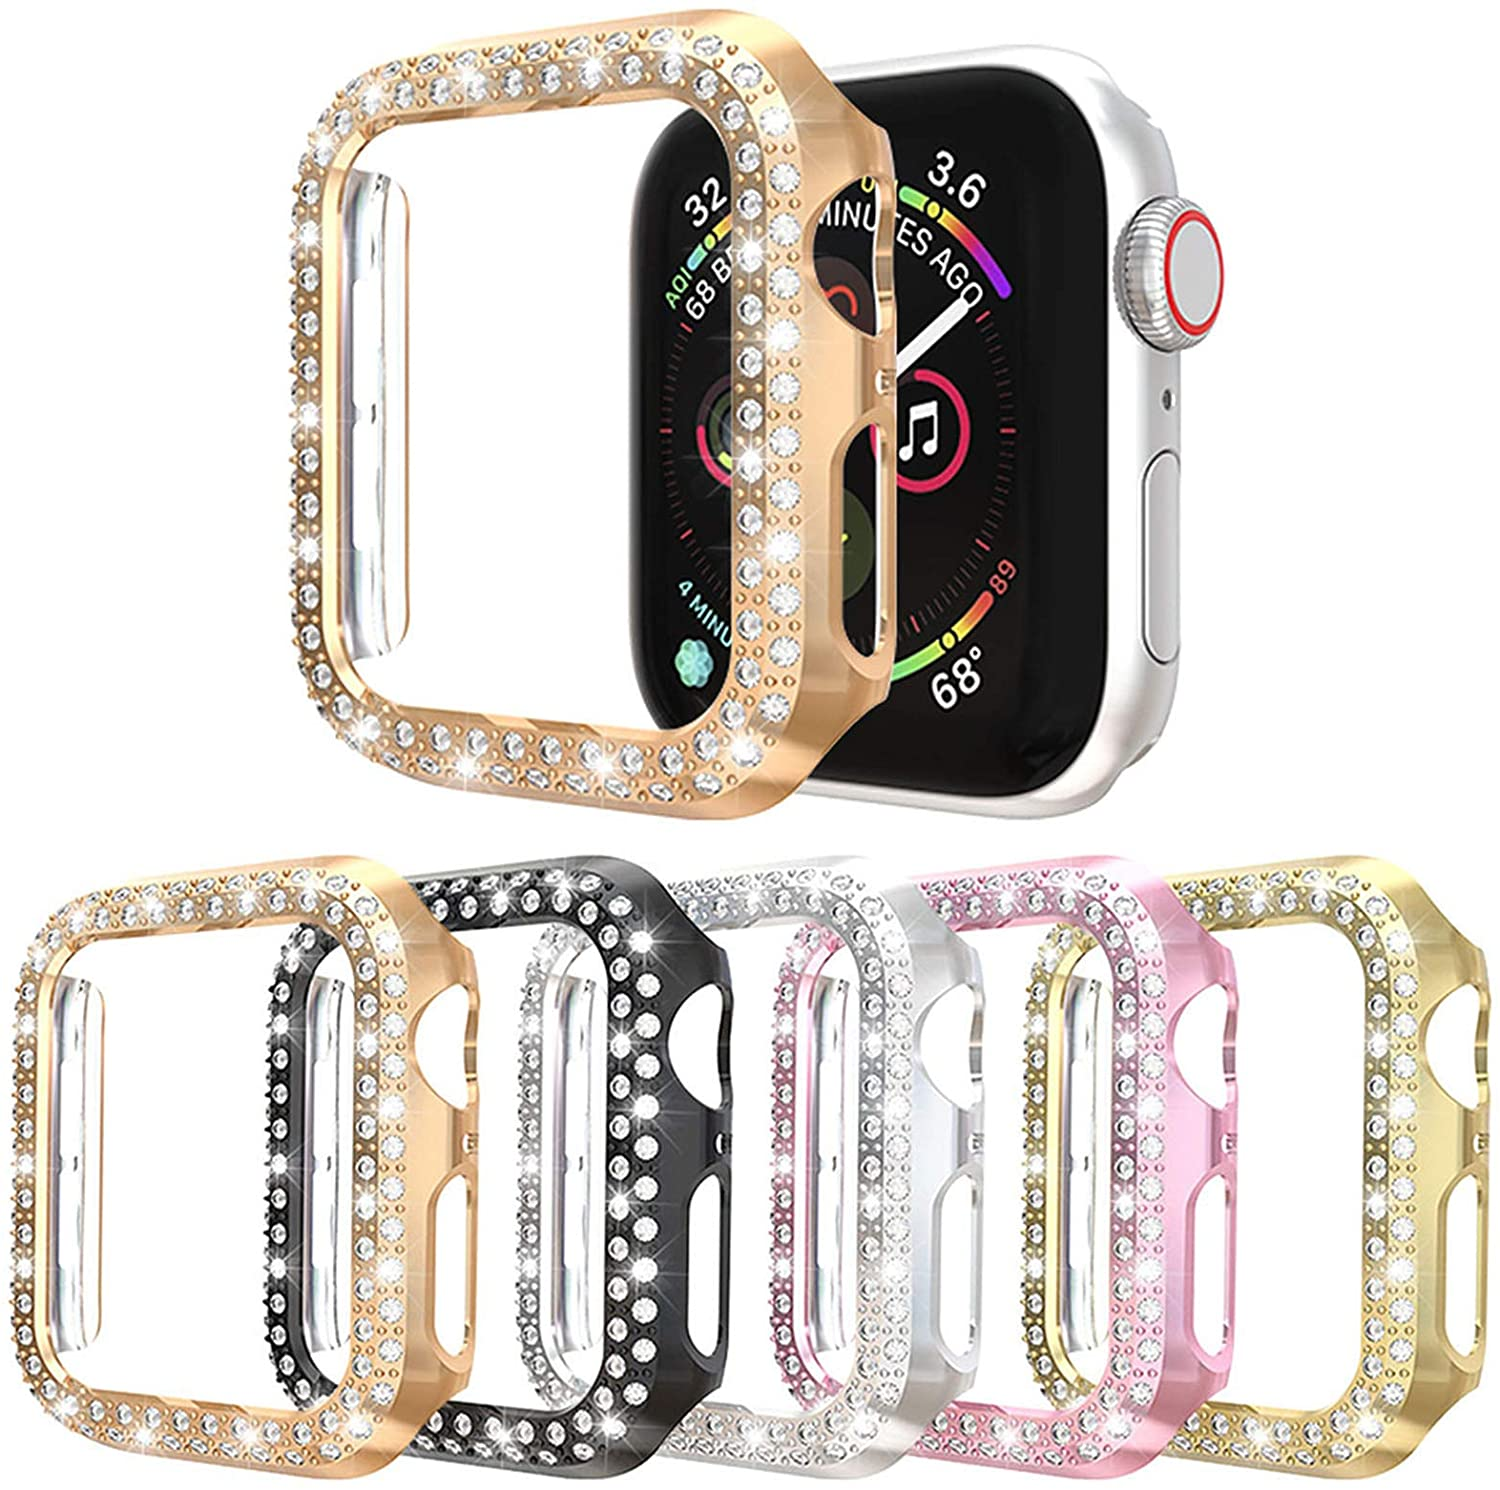 5Pack Protector Case Compatible with Apple Watch SE Series 6 5 4 44mm Cover, Double Row Bling Crystal Diamonds Protective Cover PC Plated Bumper Frame Accessories (5 Colors, 44mm)